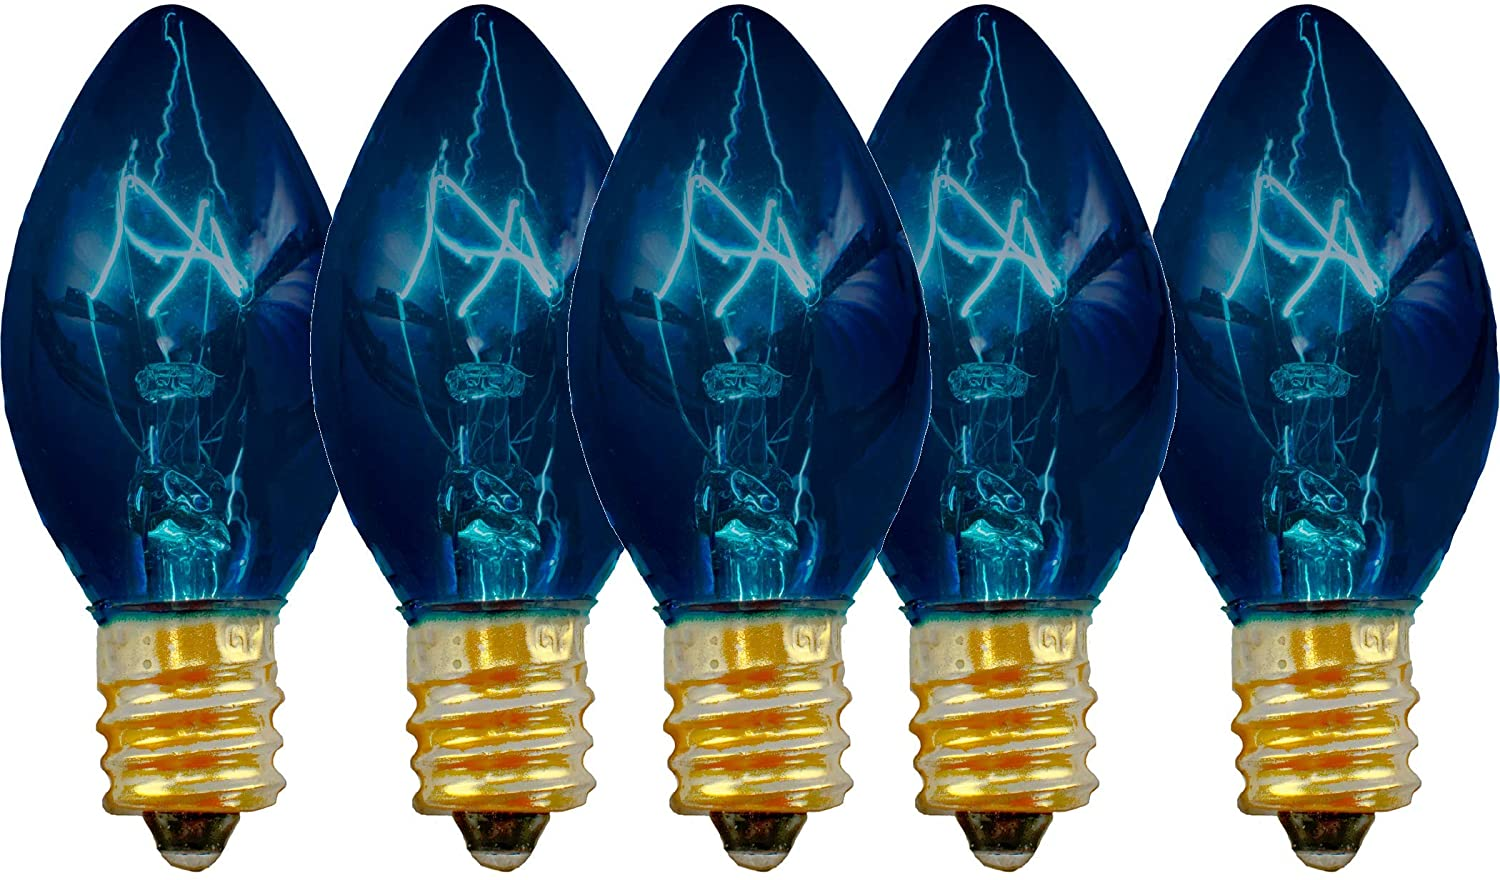 EST. LEE DISPLAY L D 1902 Indoor & Outdoor String Light C7 Ceramic Christmas Steady Replacement Bulbs (Clear Glass, Blue)